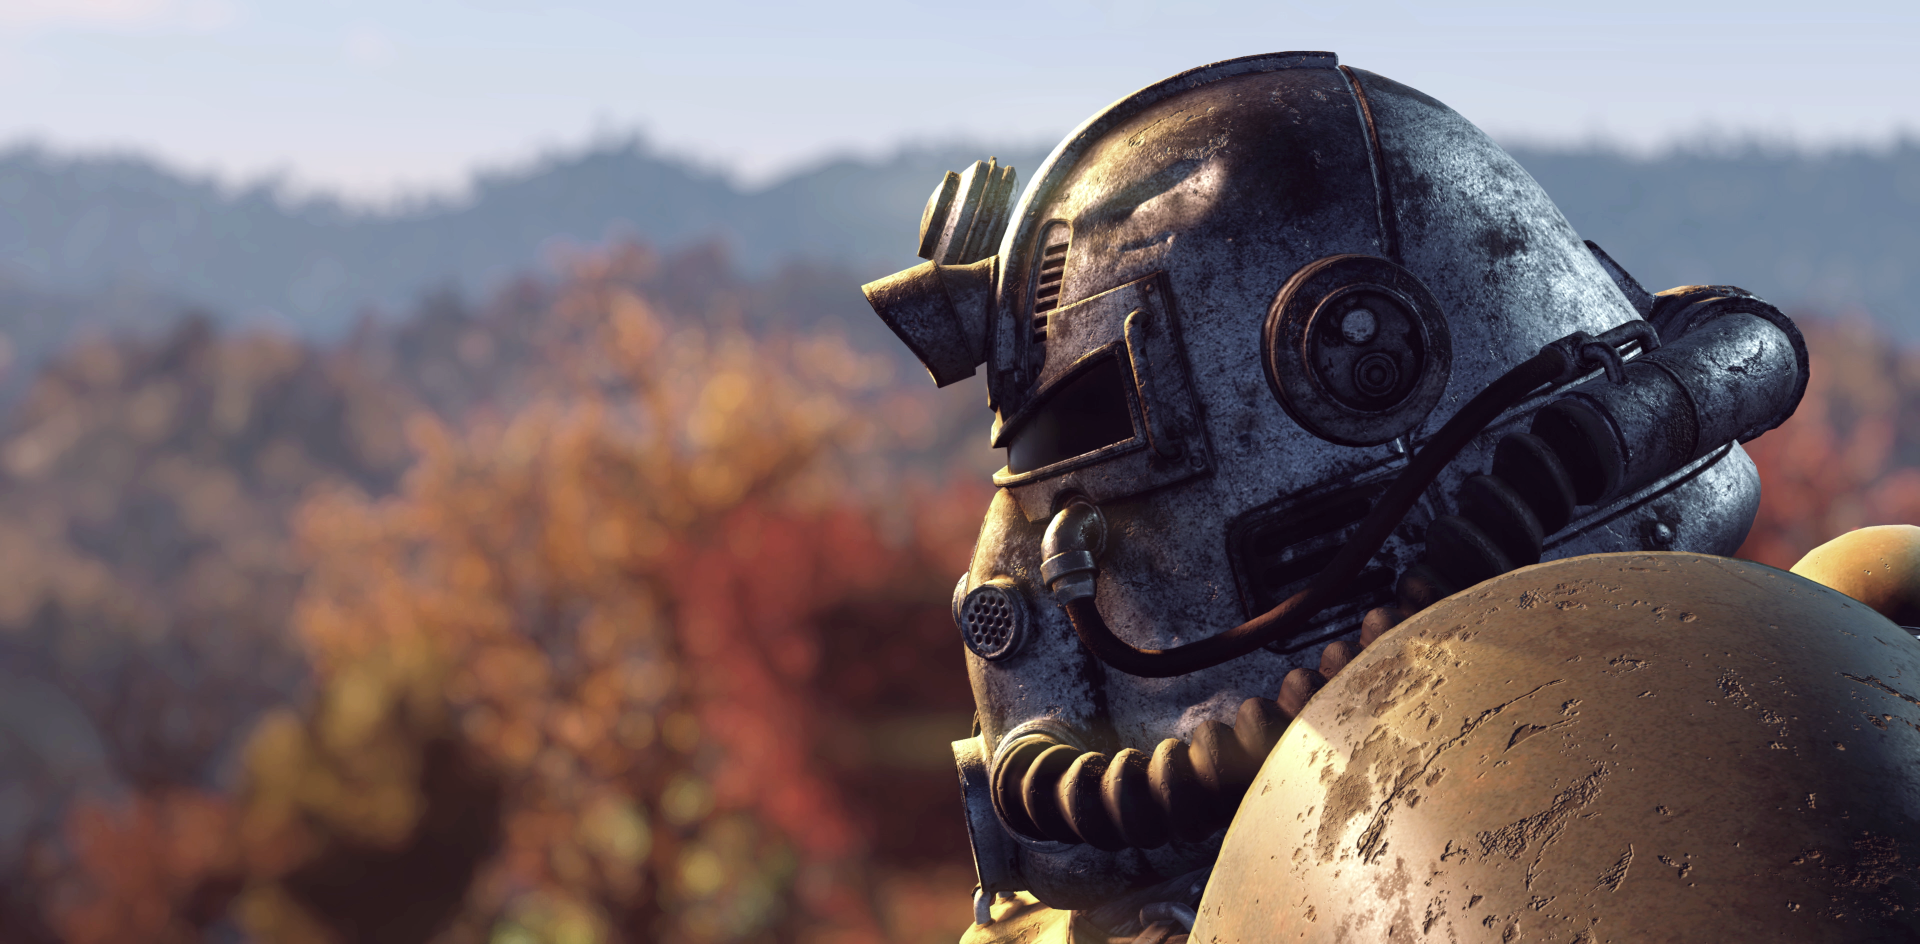 Twitch Prime deal makes Fallout 76, Sims 4, or The Last of Us practically free